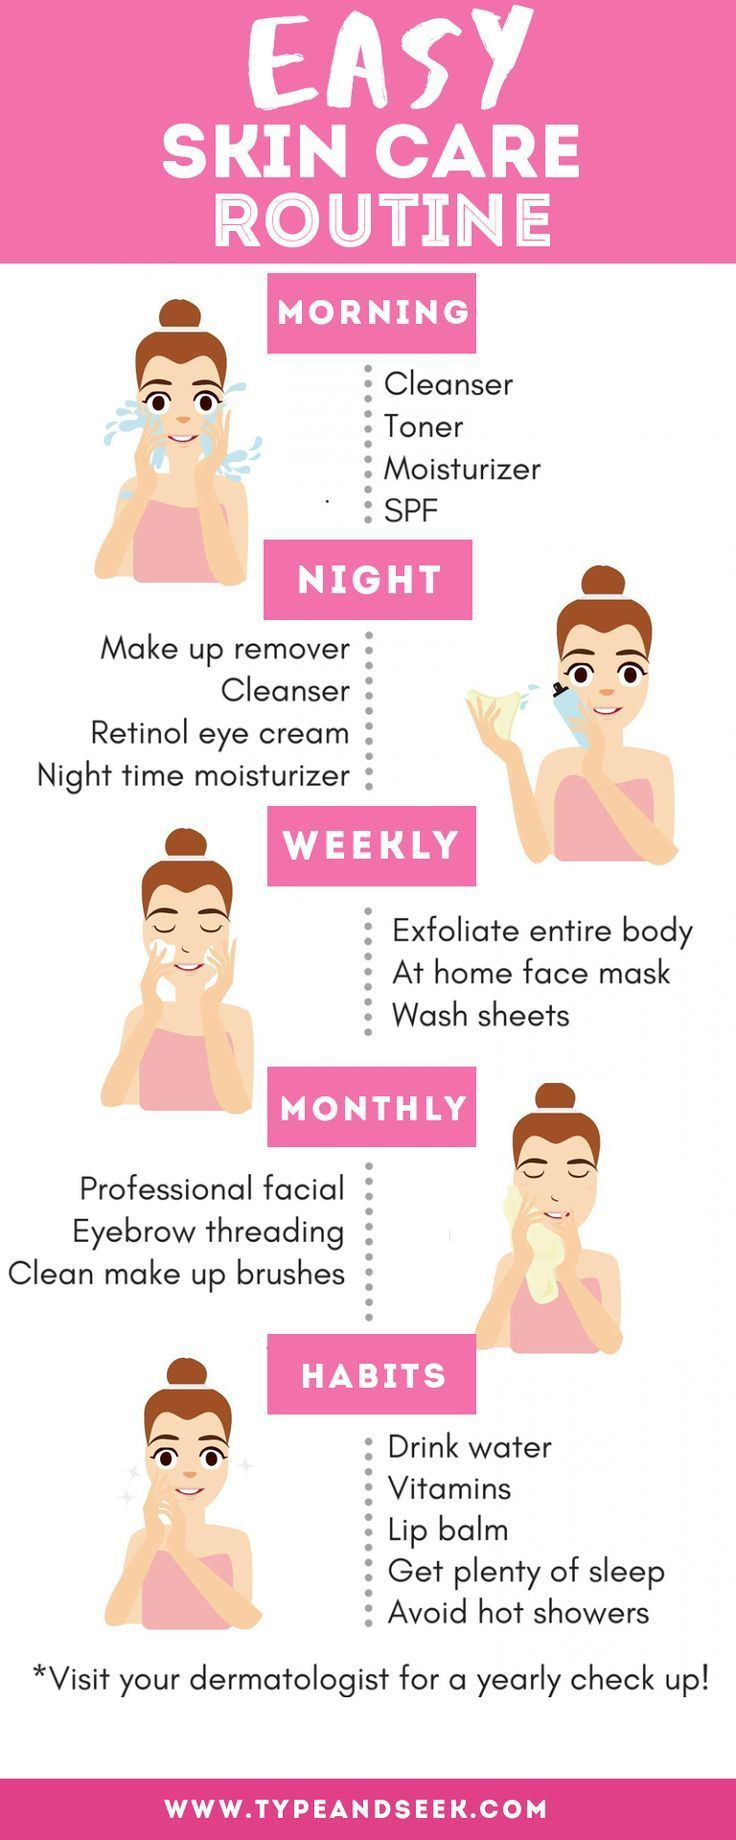 Easy Skin Care Routine That Works Wonders